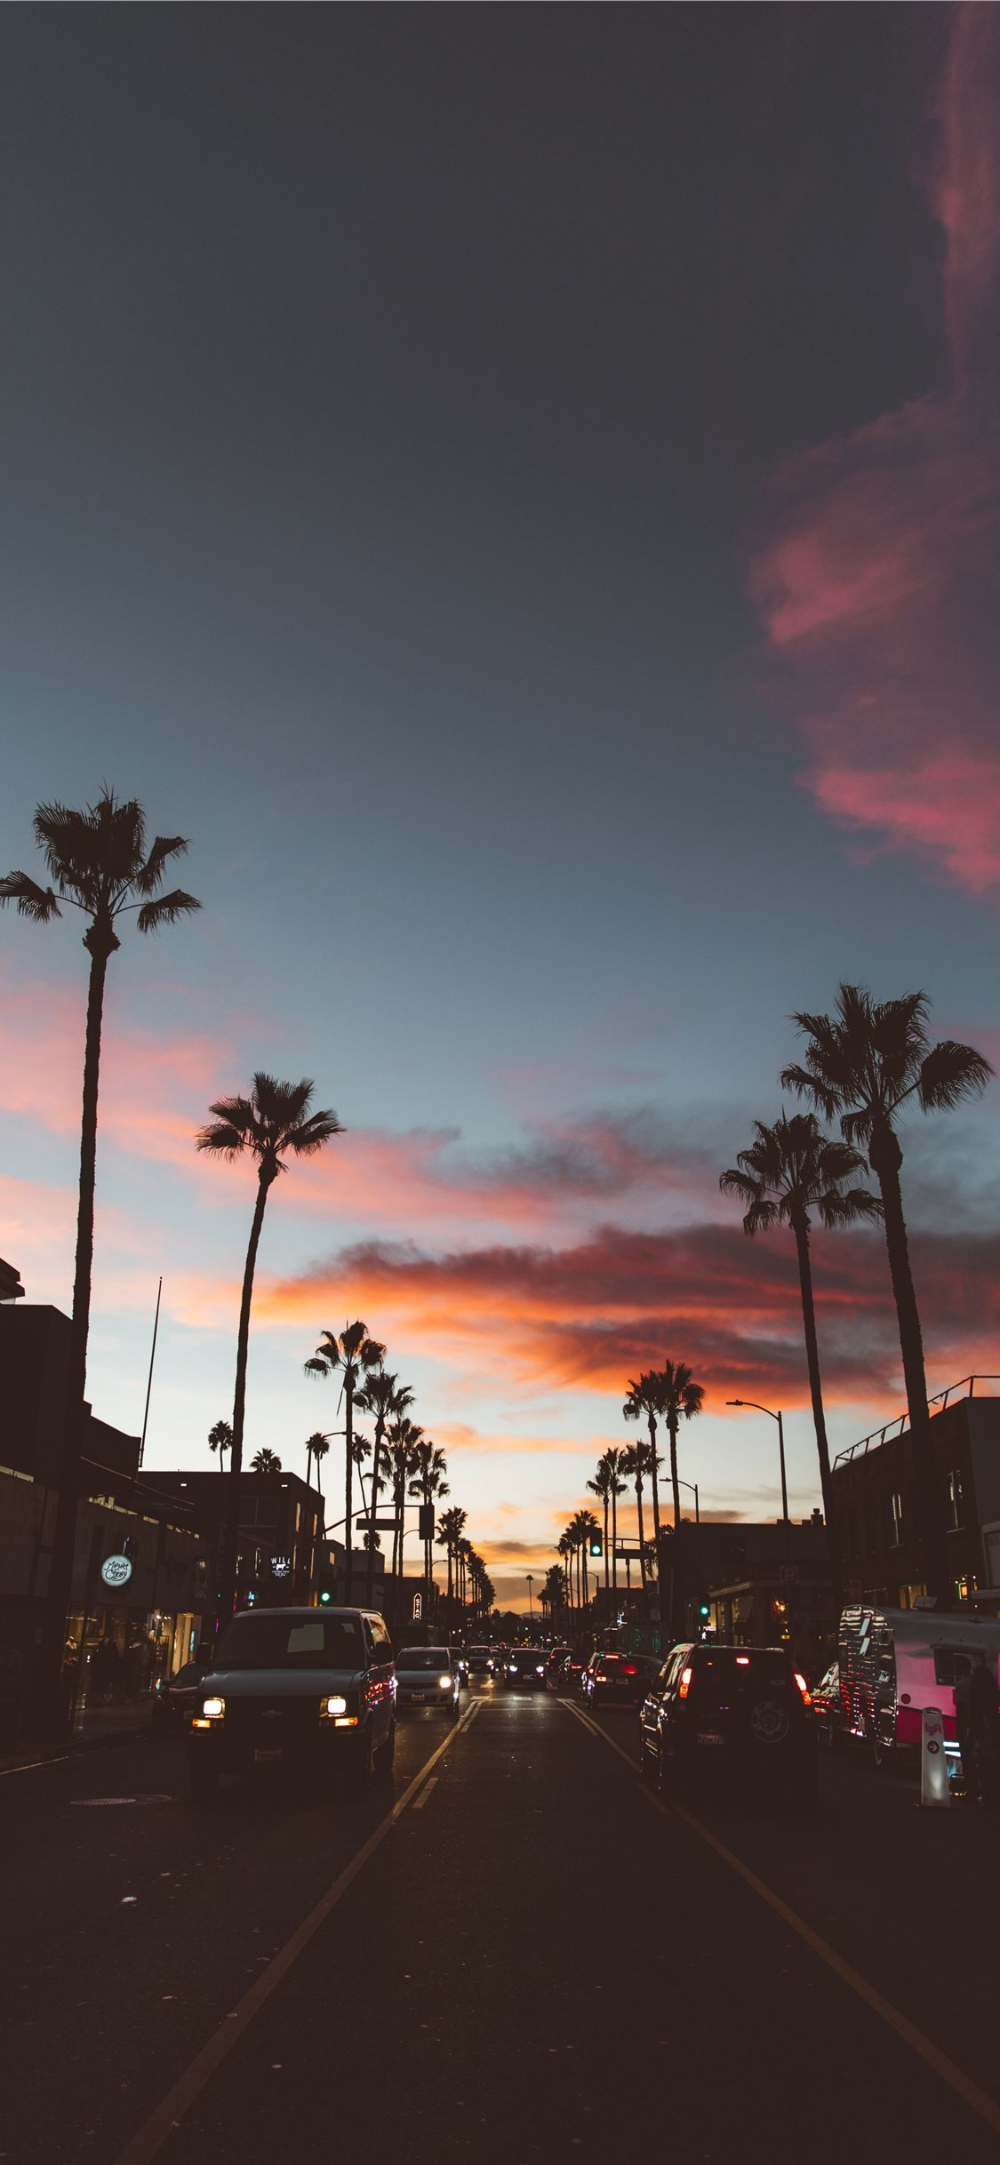 Free Download The Abbot Kinney Wallpaper Beaty Your Iphone La Urban Los Angeles Palm In 2020 Iphone Wallpaper Los Angeles California Wallpaper Sunset Wallpaper